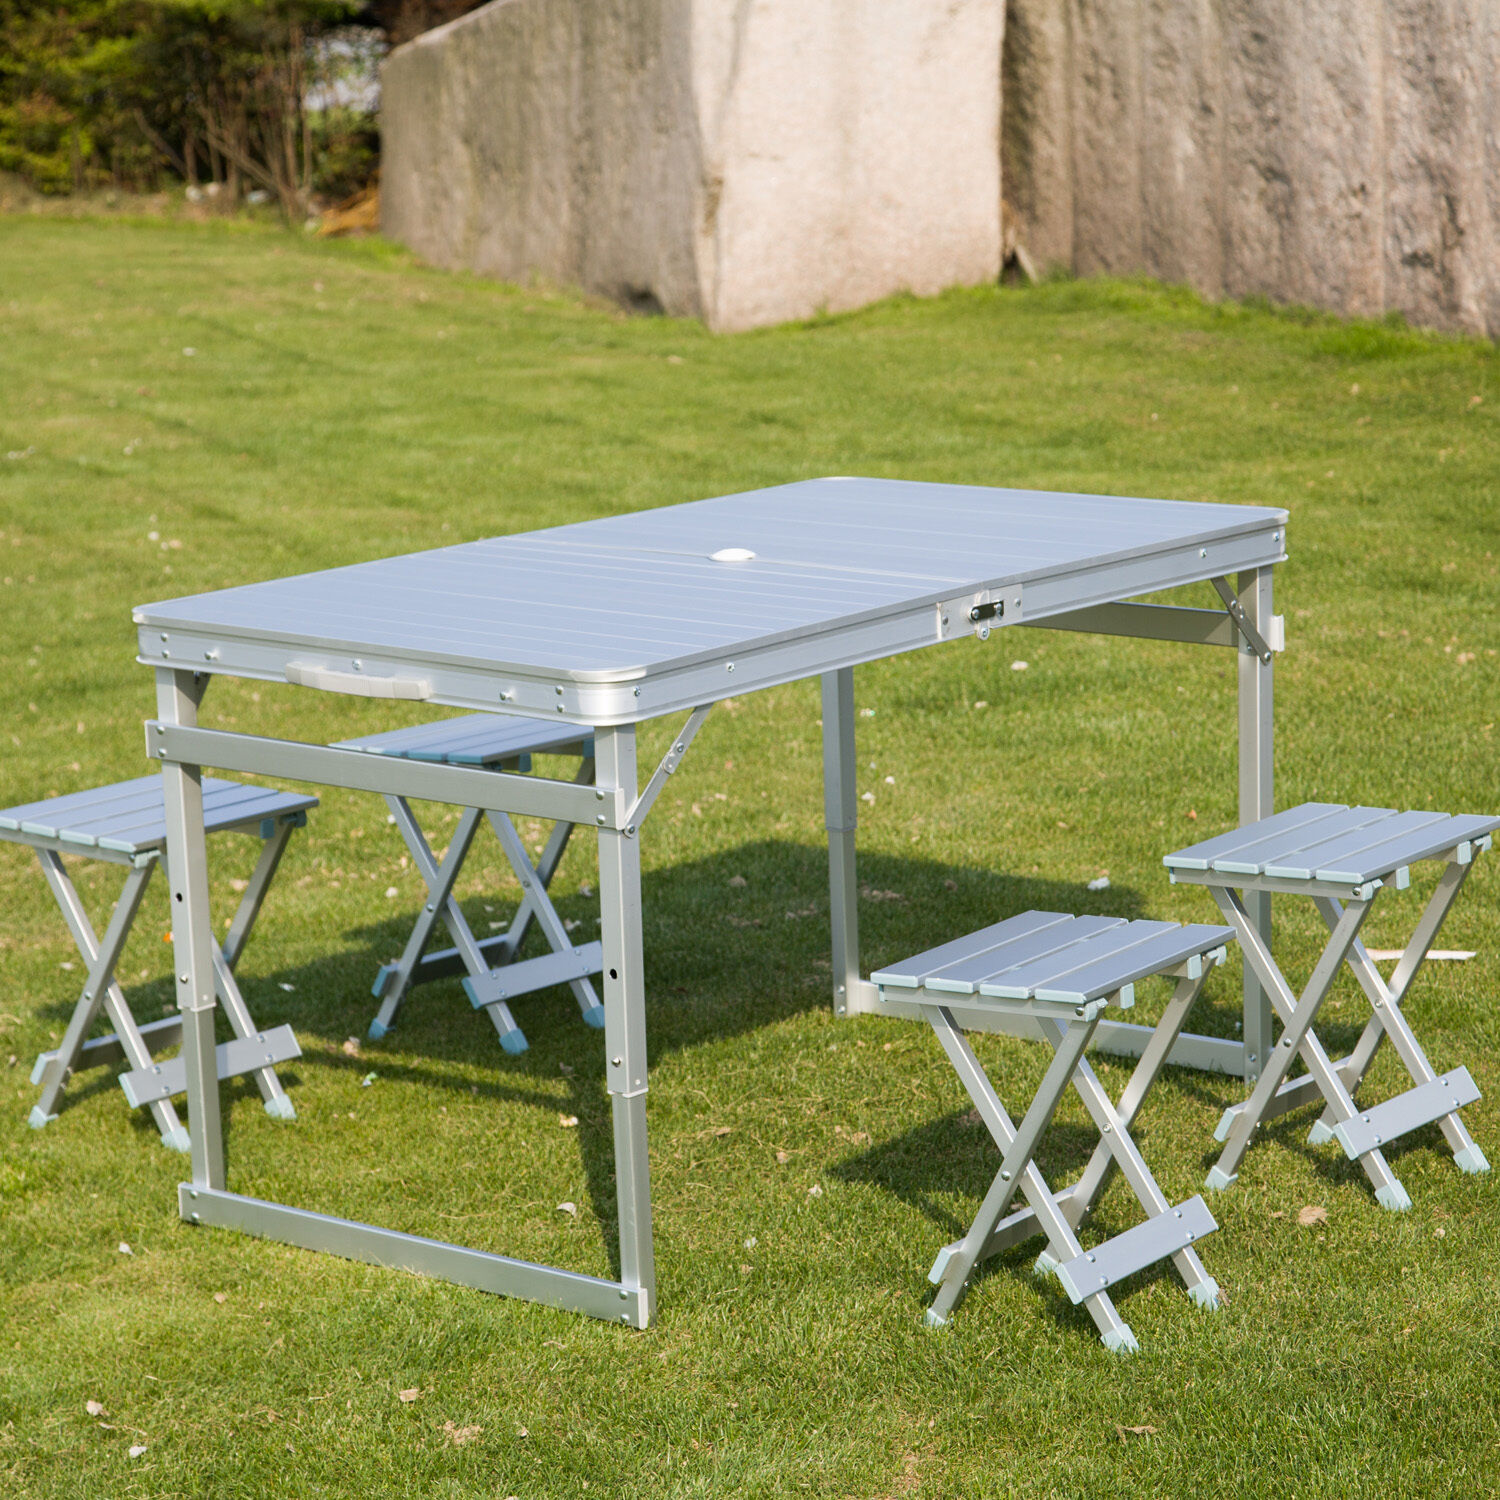 46  x  27  Portable Folding Table and 4 Stools Set Camp Picnic Suitcase Outdoor  high quaity